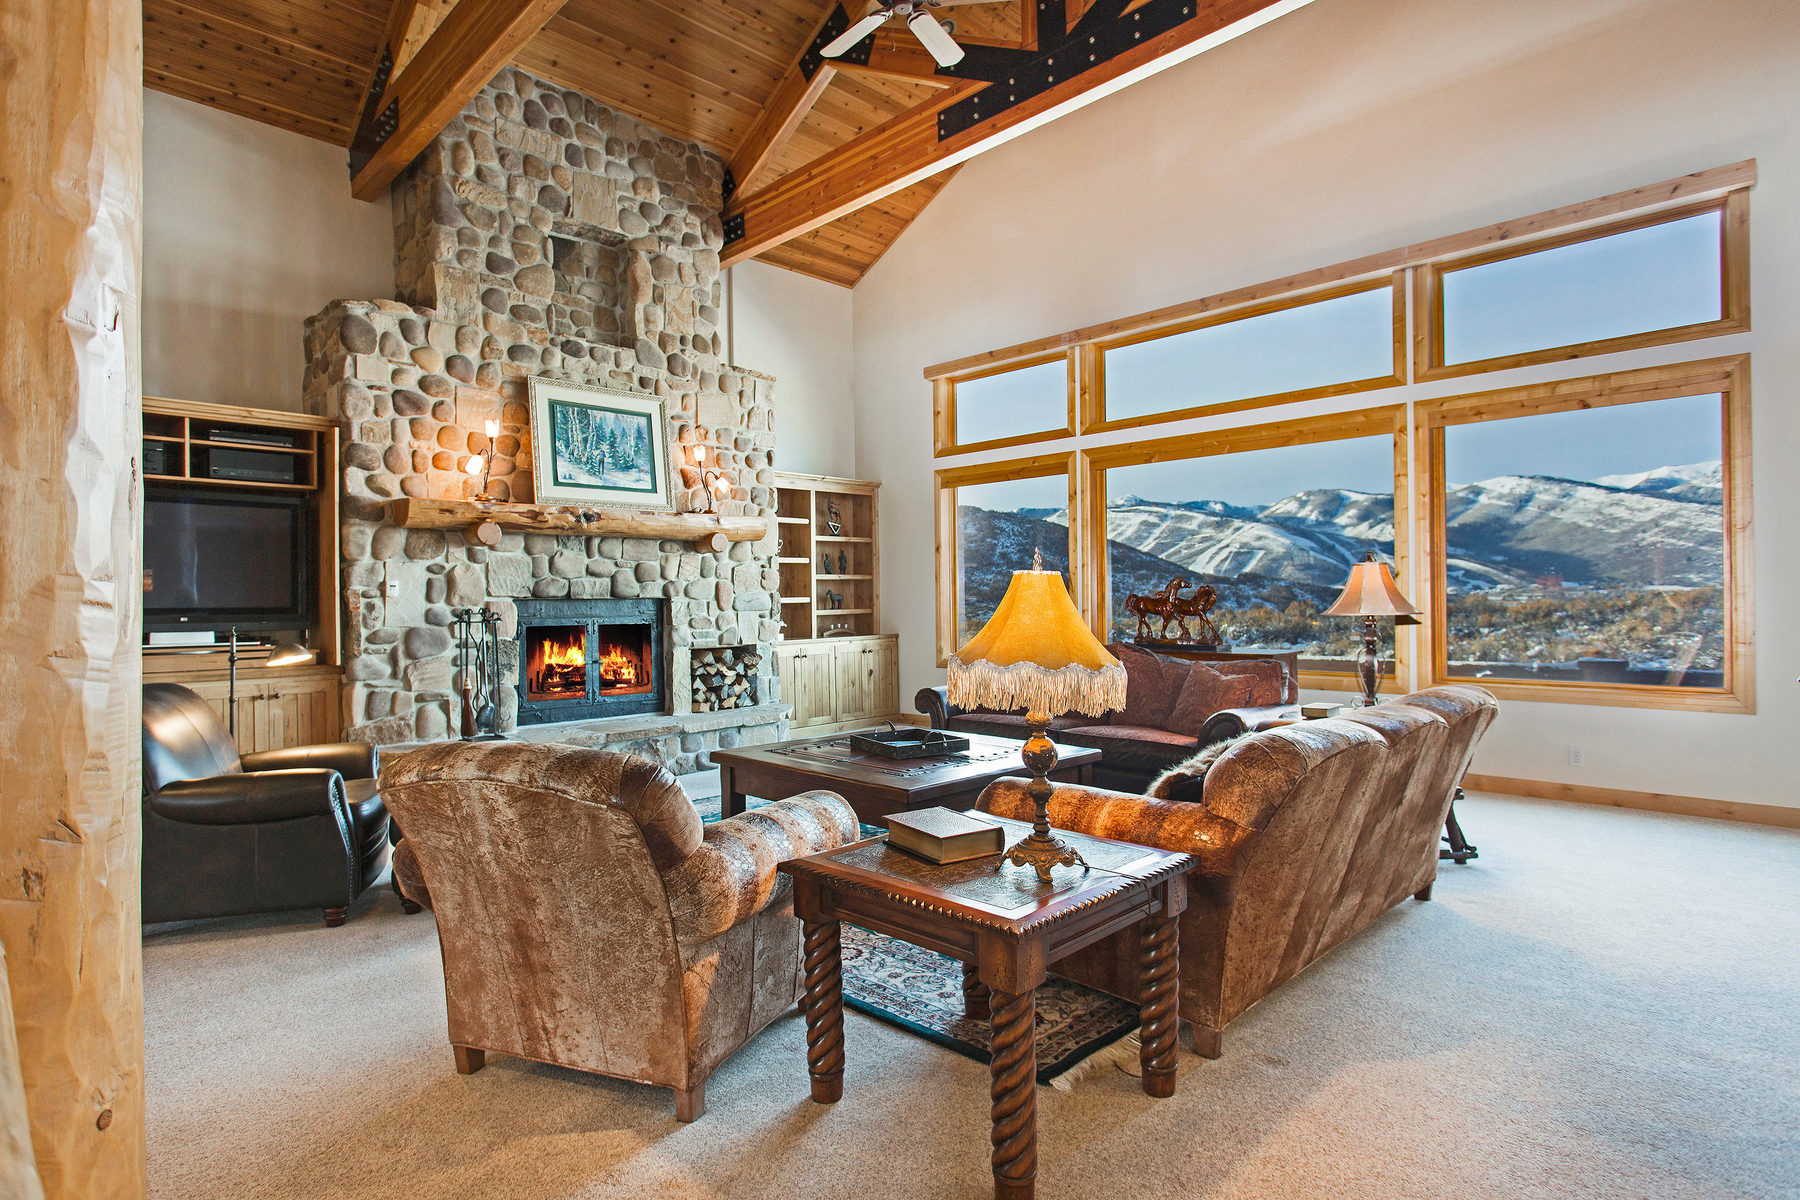 Villa per Vendita alle ore The Perfect Ski Home with Views and Privacy 2705 Silver Cloud Dr Park City, Utah 84060 Stati Uniti